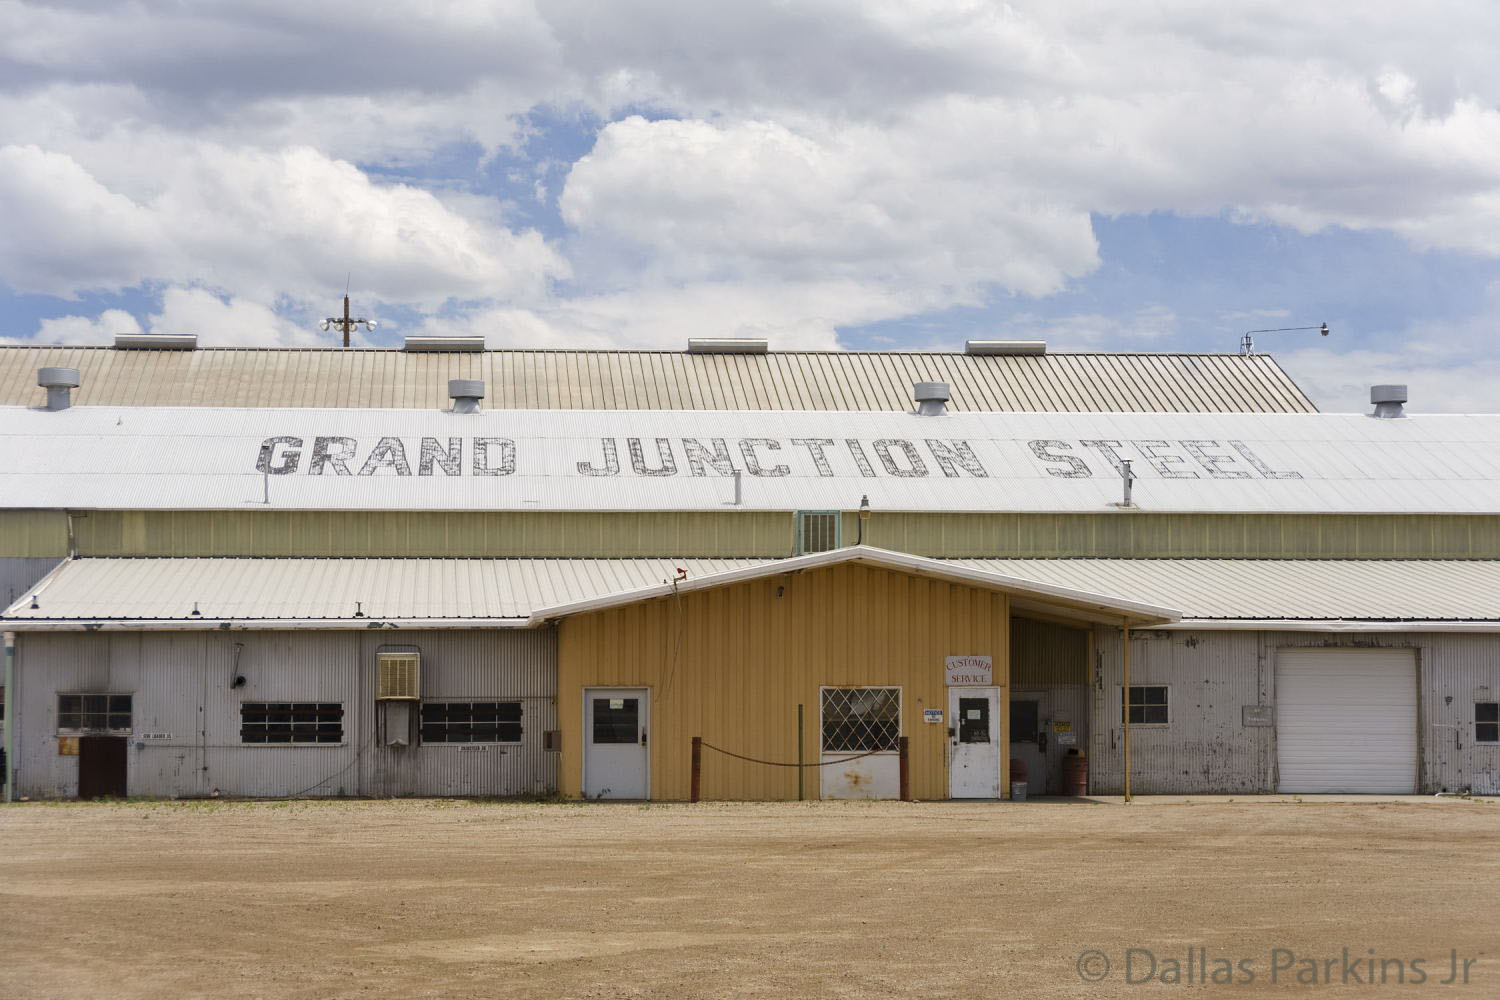 Grand Junction Steel No. 3